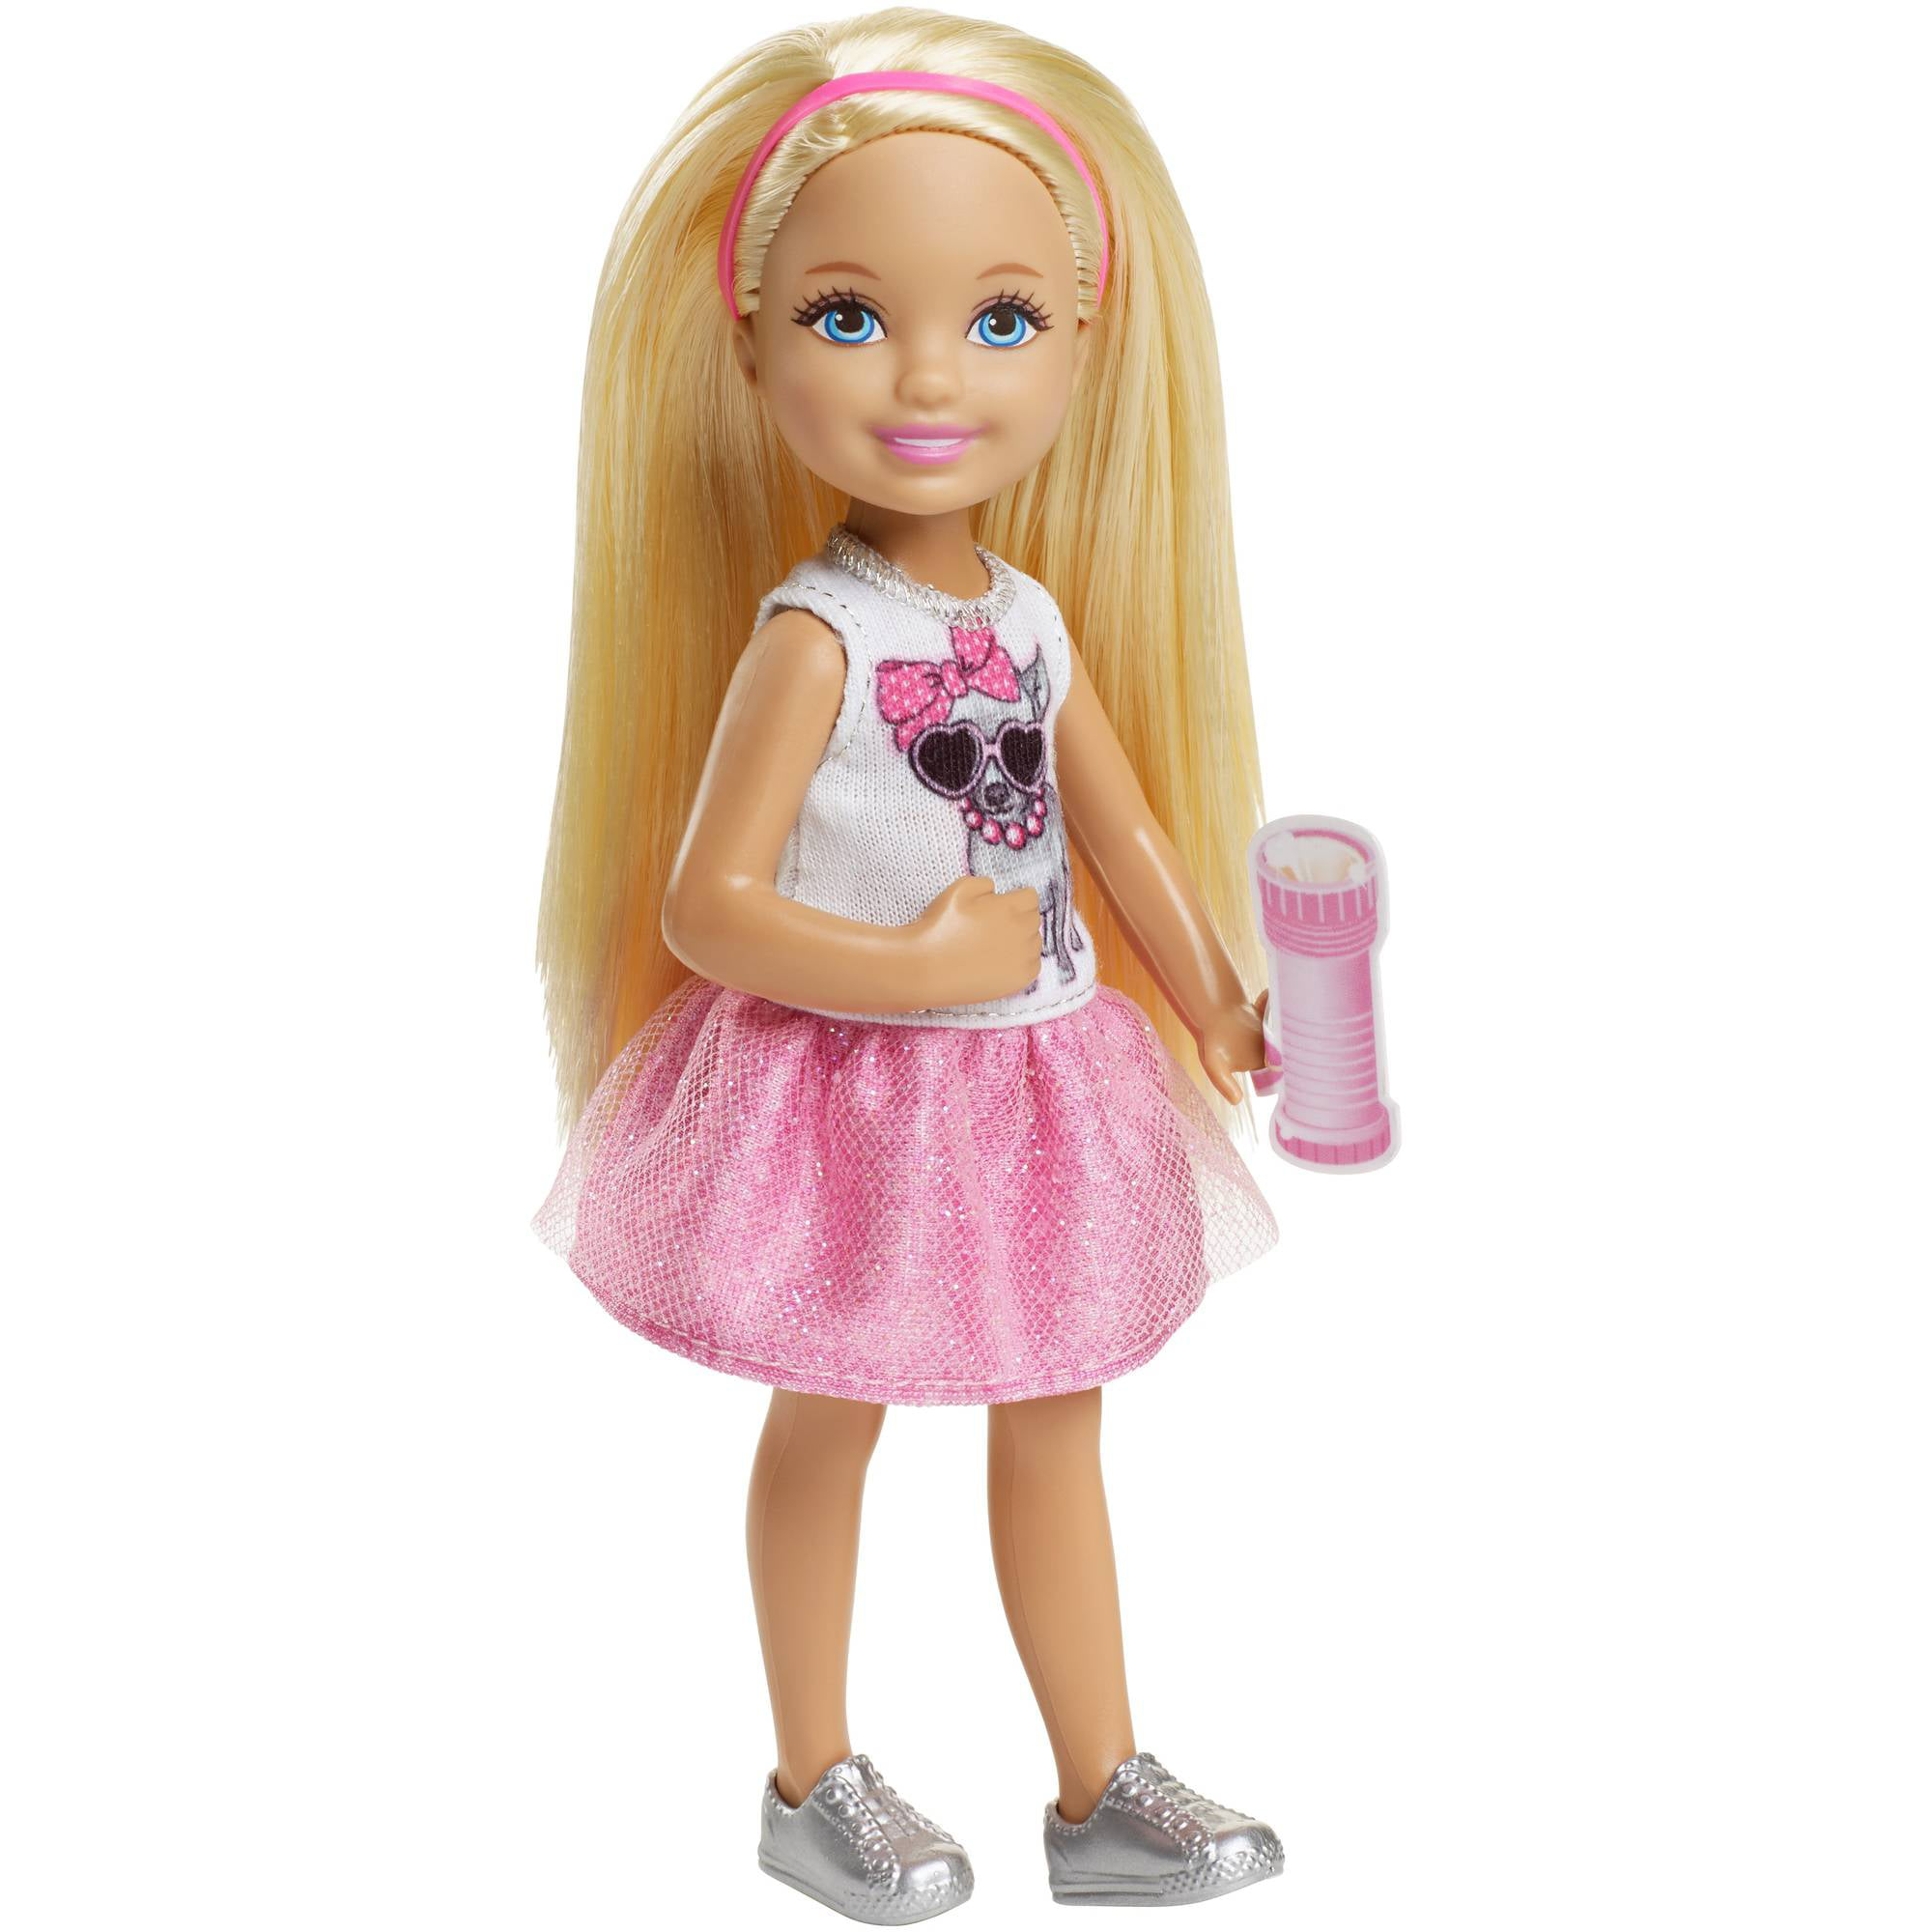 Barbie Chelsea Great Puppy Adventure Doll - Walmart.com 967ade0bf